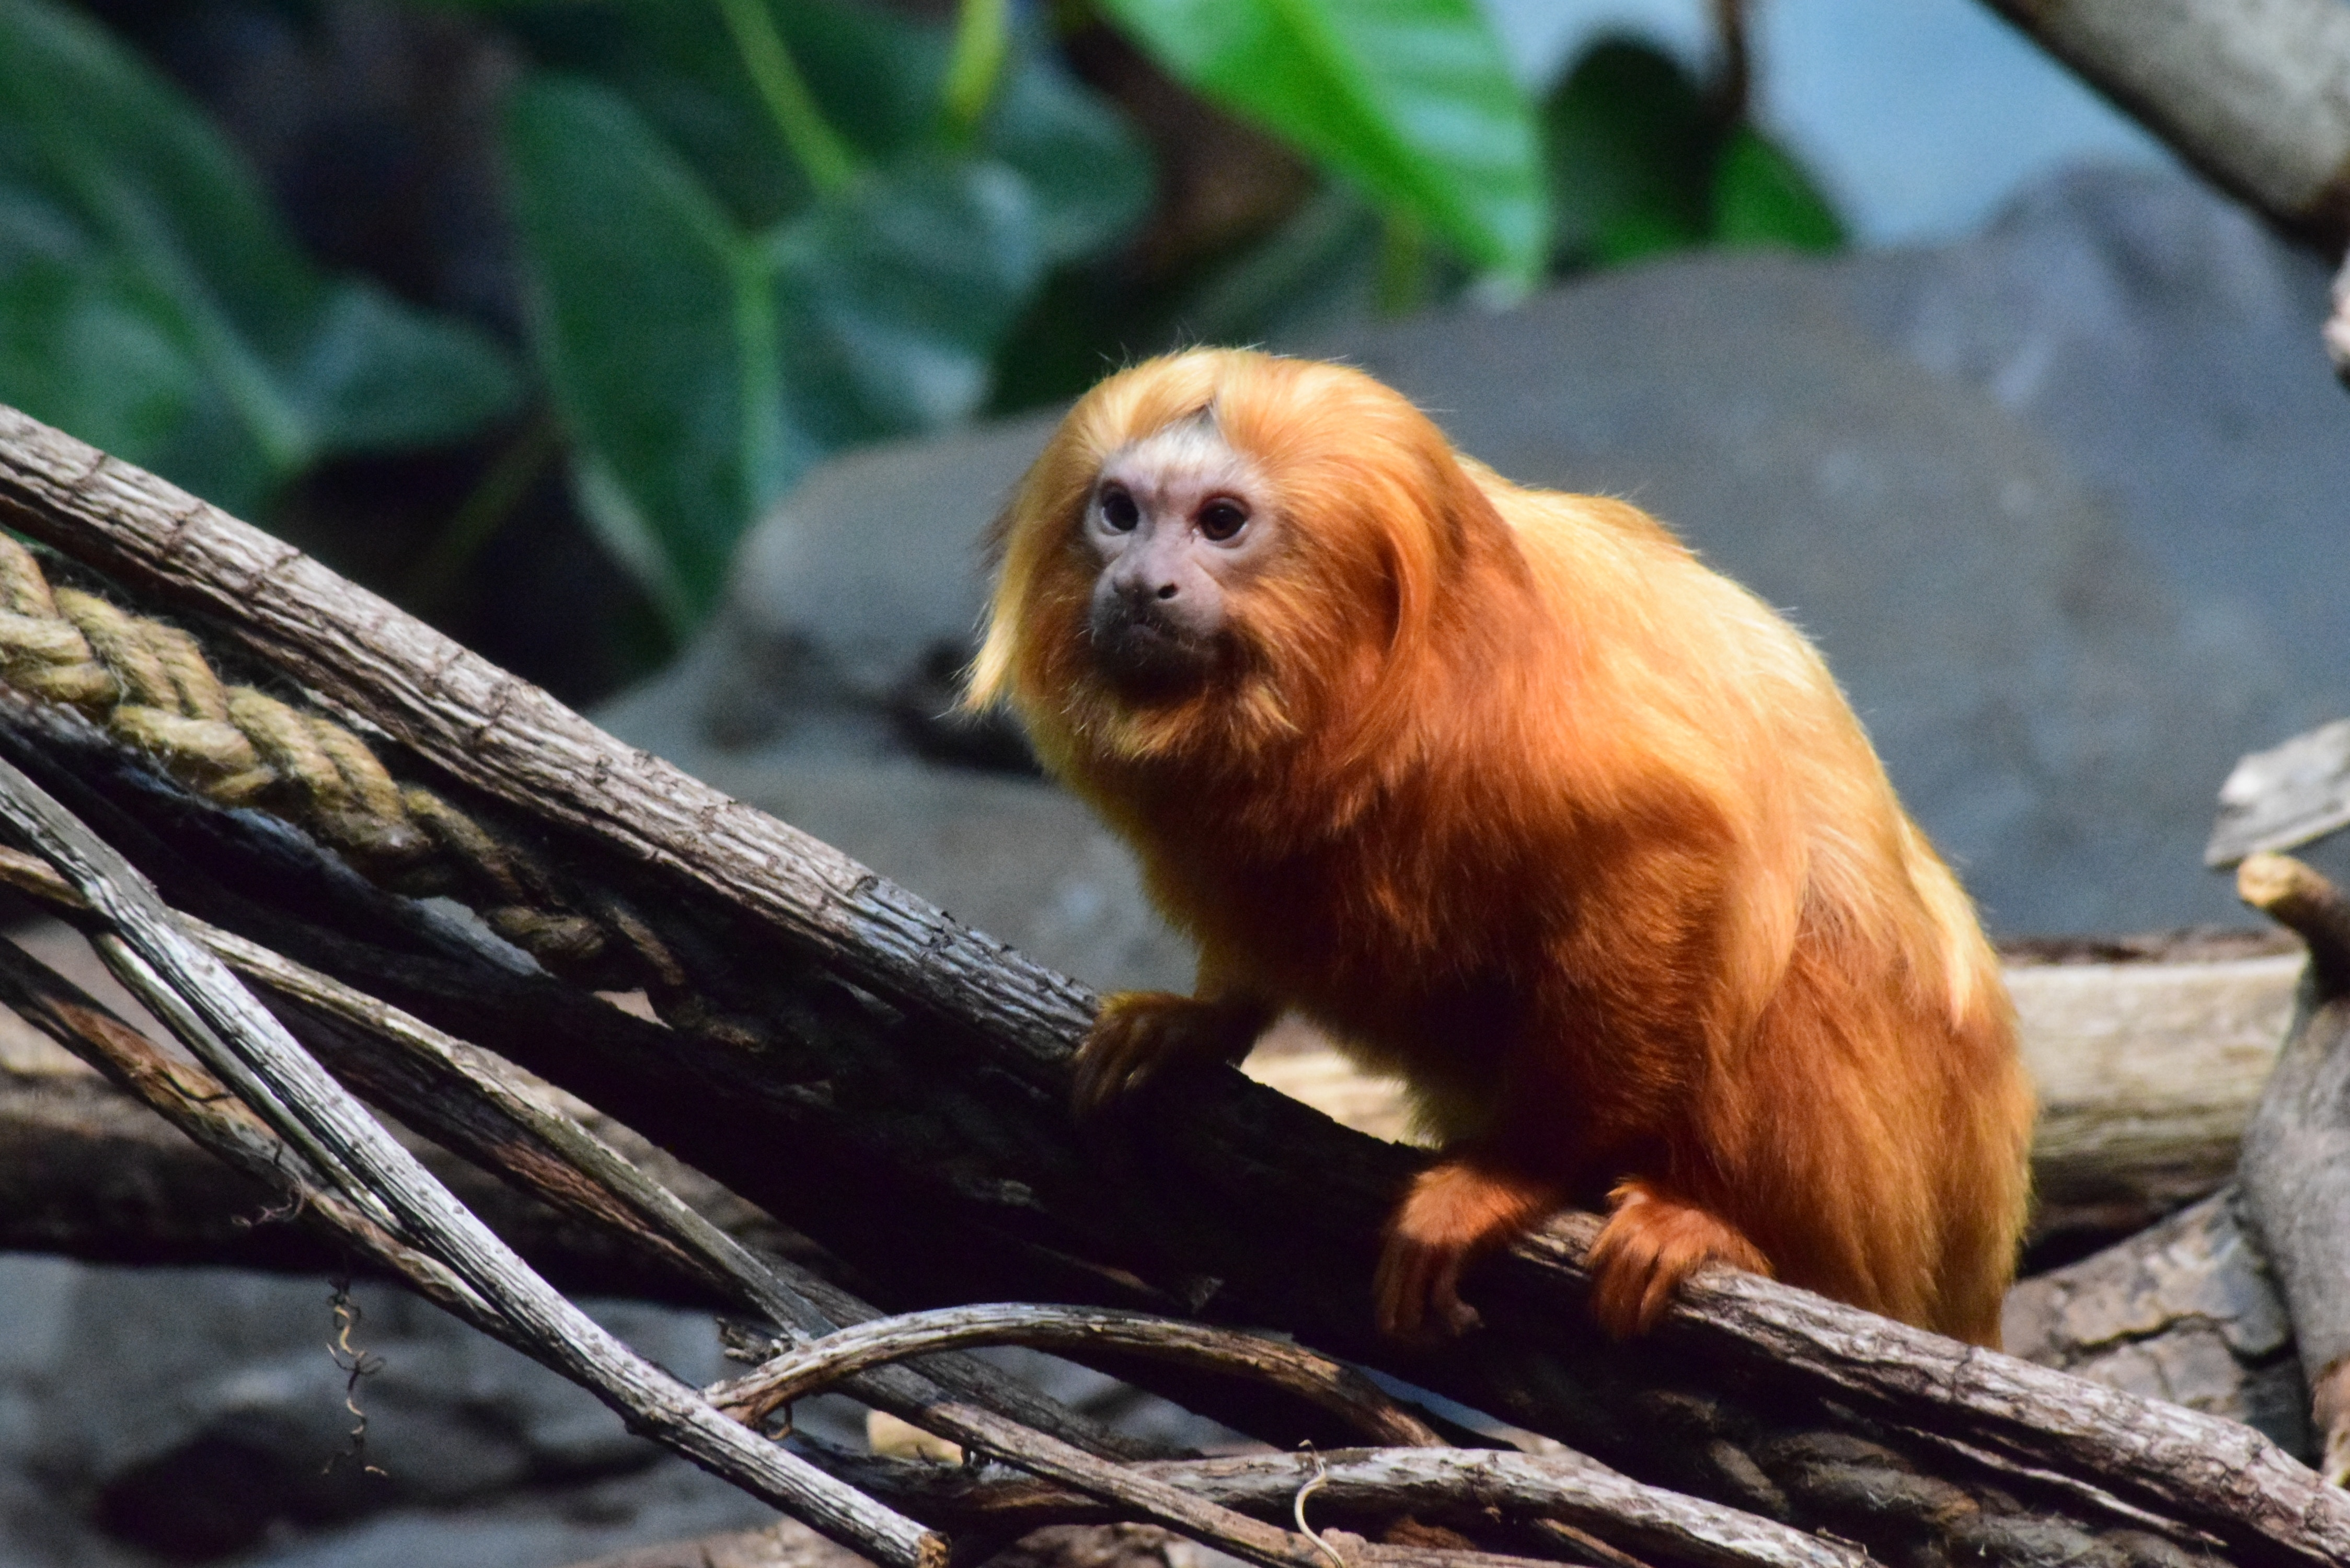 primate in a zoo